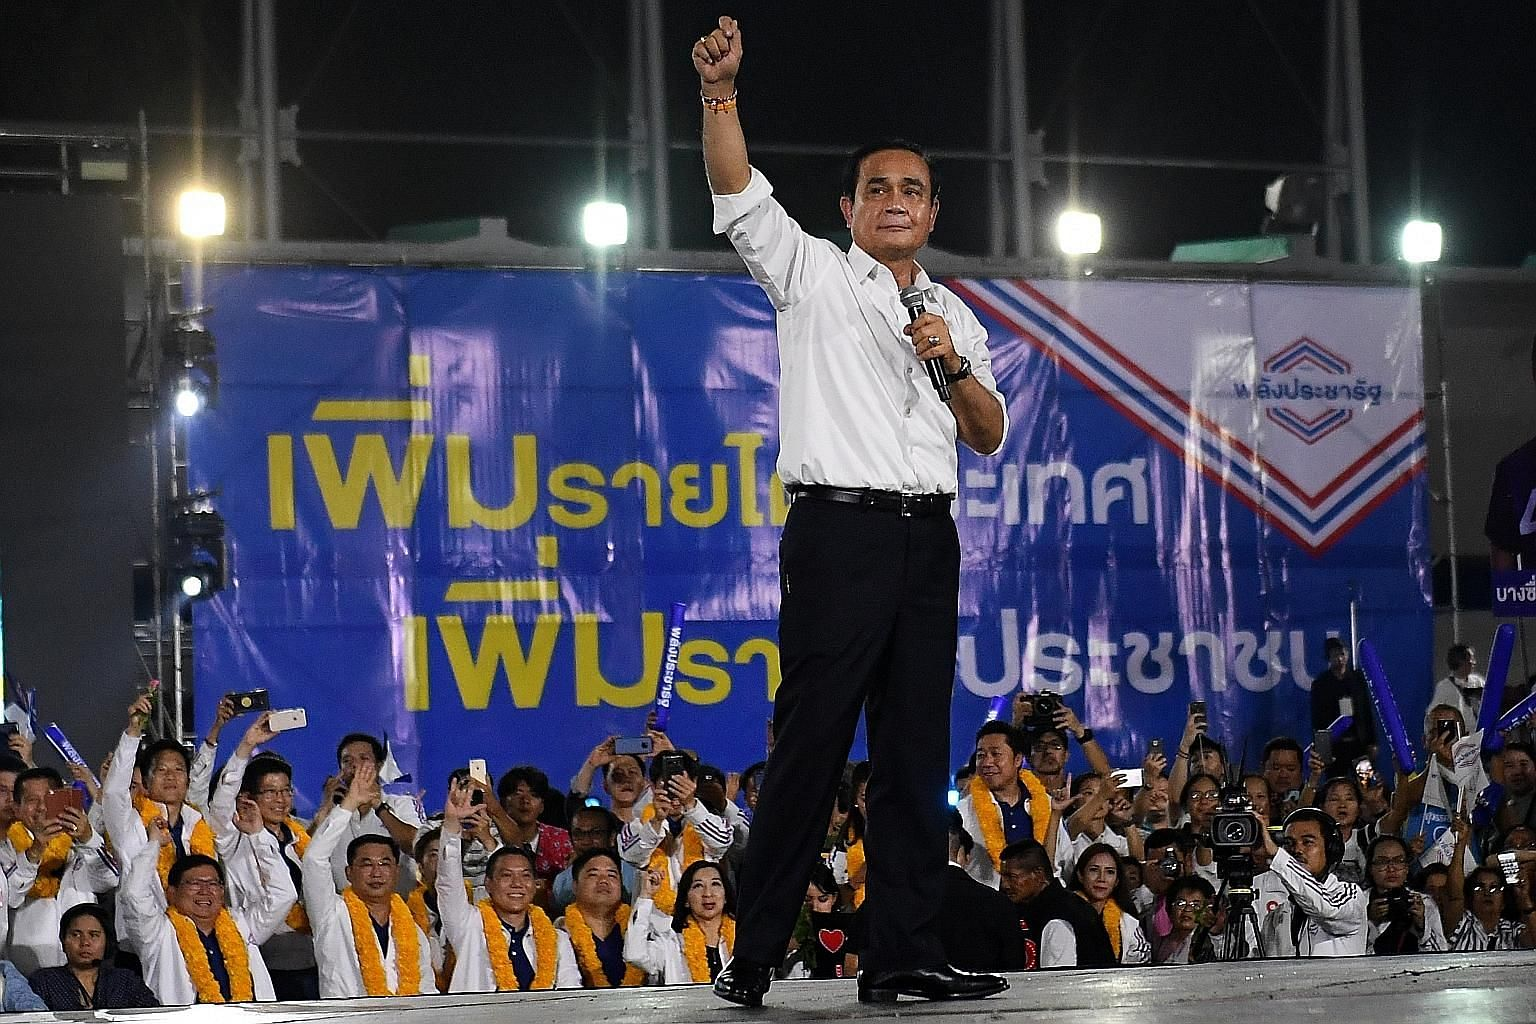 Indonesia's President Joko Widodo and Thailand's Prime Minister Prayut Chan-o-cha (above) on the campaign trail earlier this year. Both were returned to office. Mr Joko will now have to face the challenge of balancing economic growth with socio-cultural d